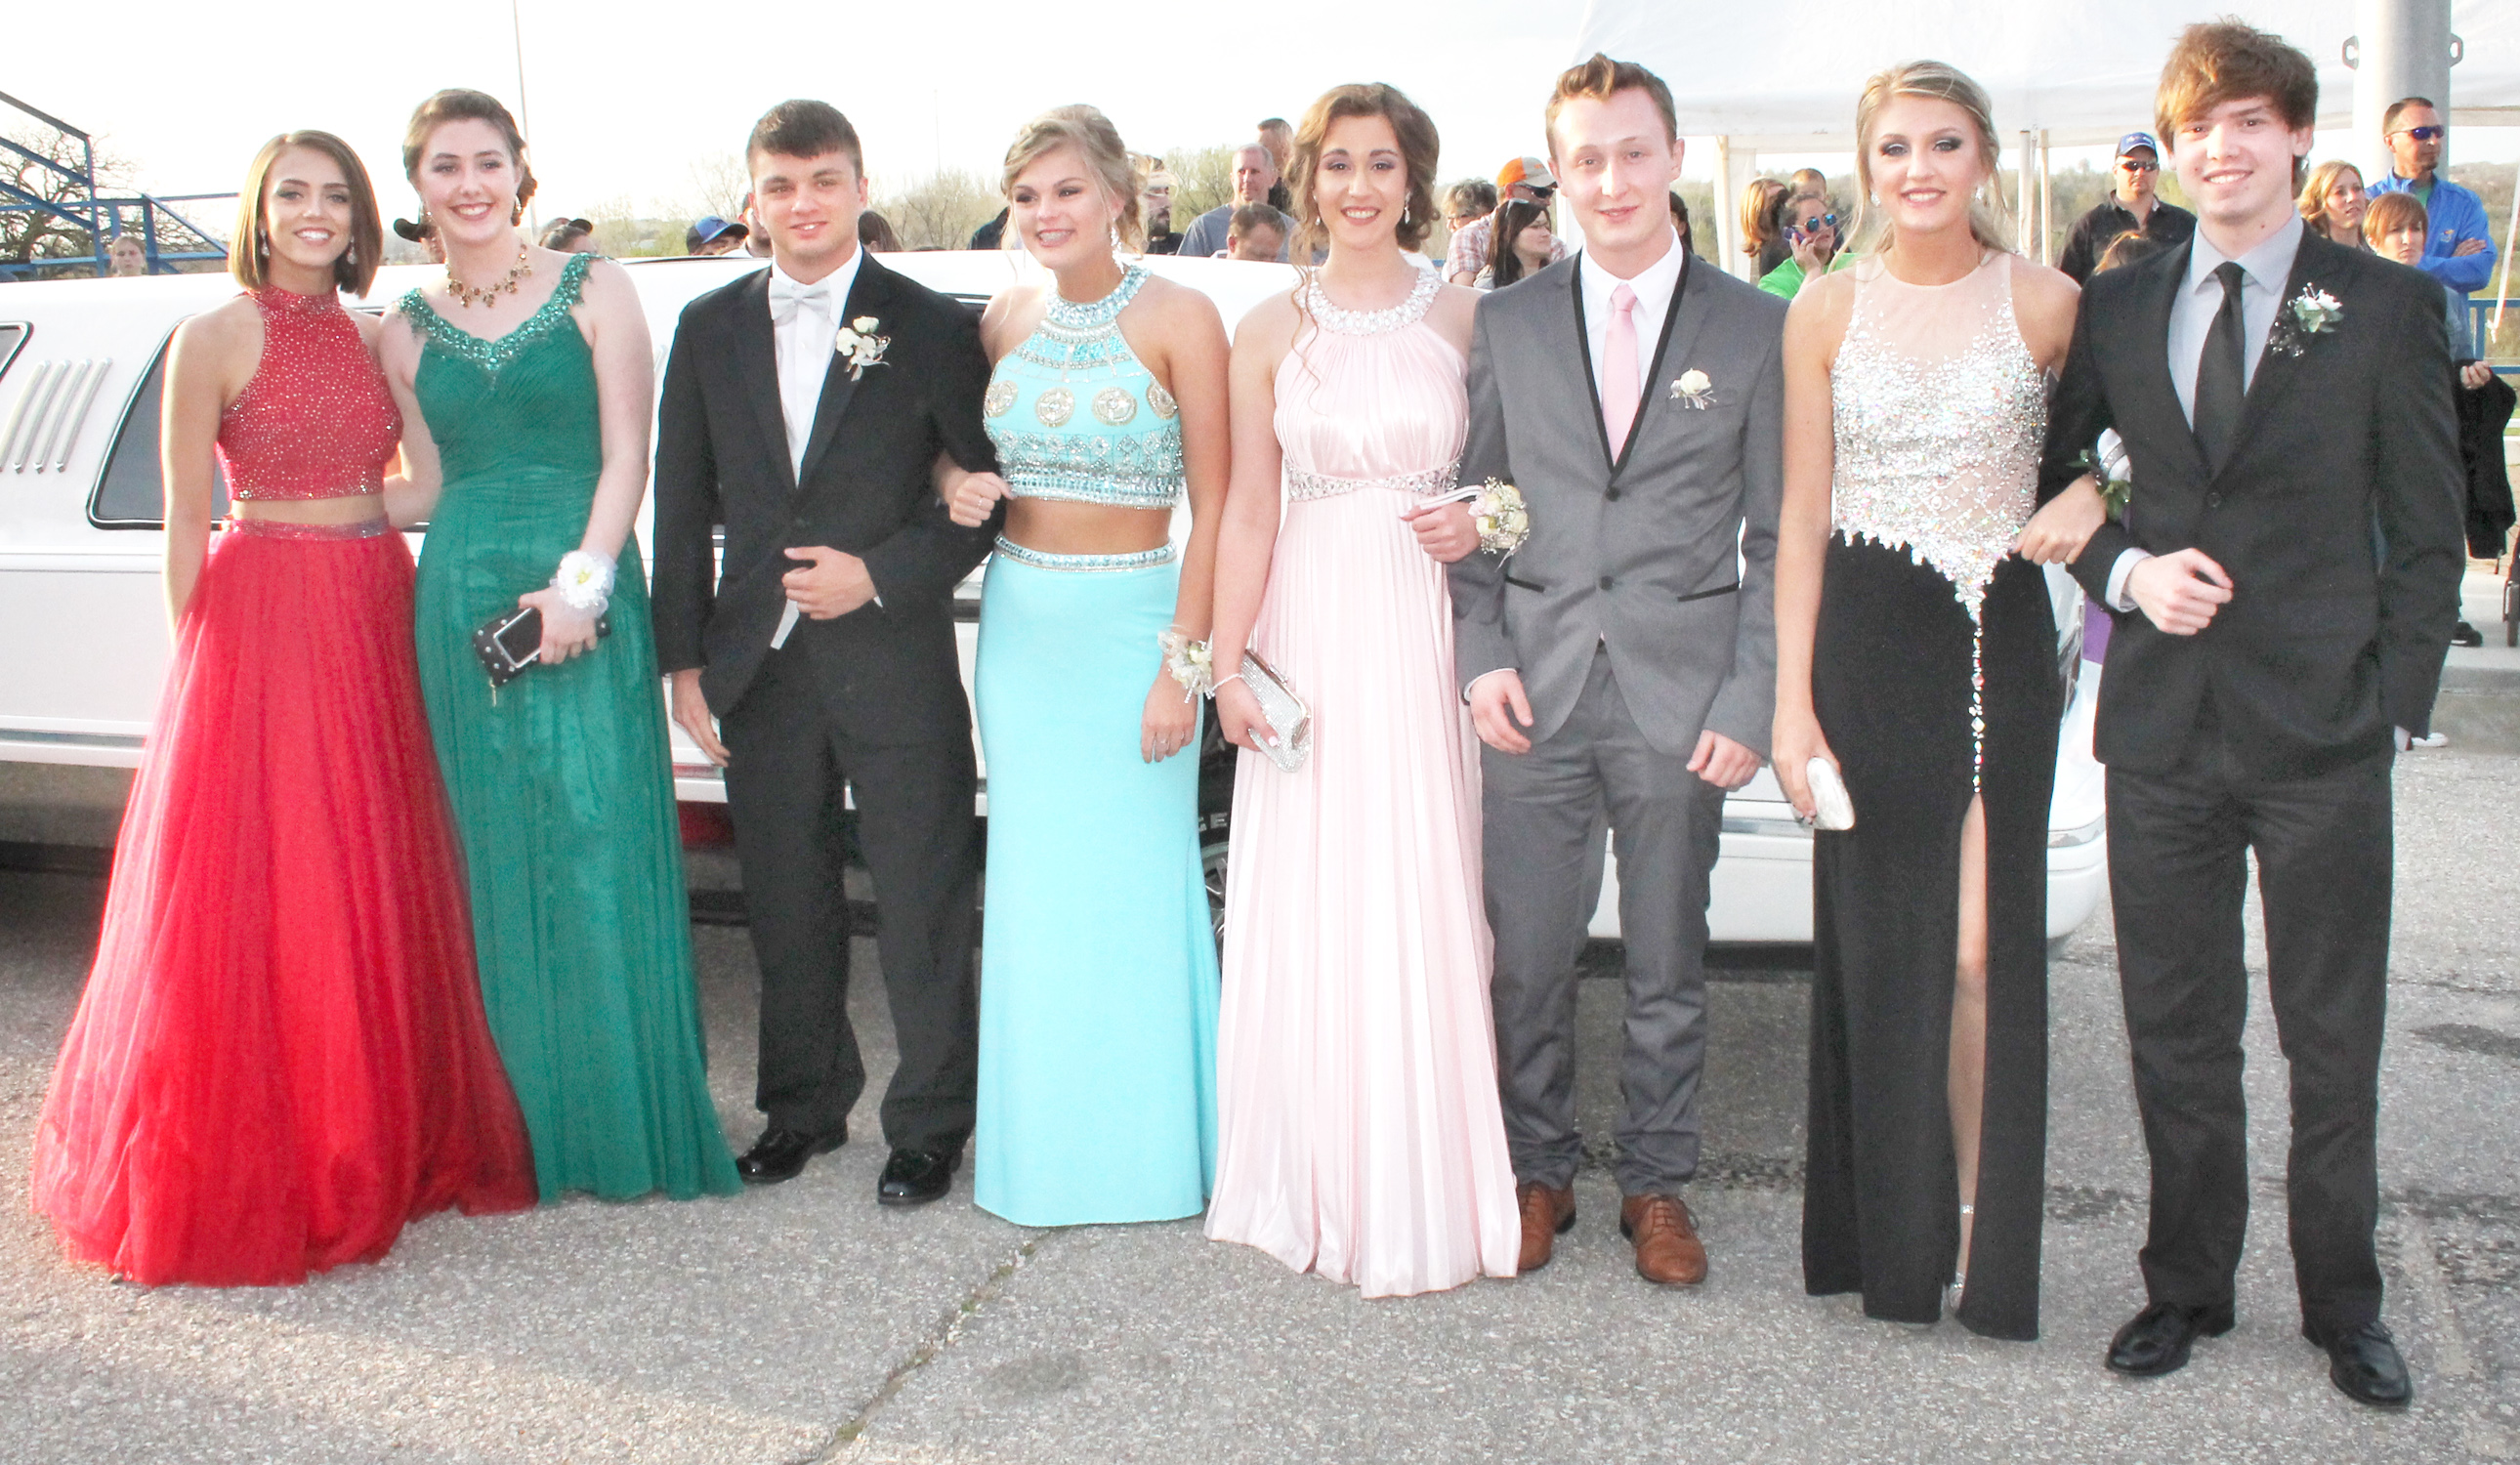 Those arriving by stretch limousine at Saturday's Holton High School prom included (from left to right) Sydney McRae, Haydee Carlson, Dakota Colhouer, Kendall Raney, Zaina Kahlil, Matthew Peoples, Makayla Colhouer and Anthony D'Amoto. (Photo by Brian Sanders)